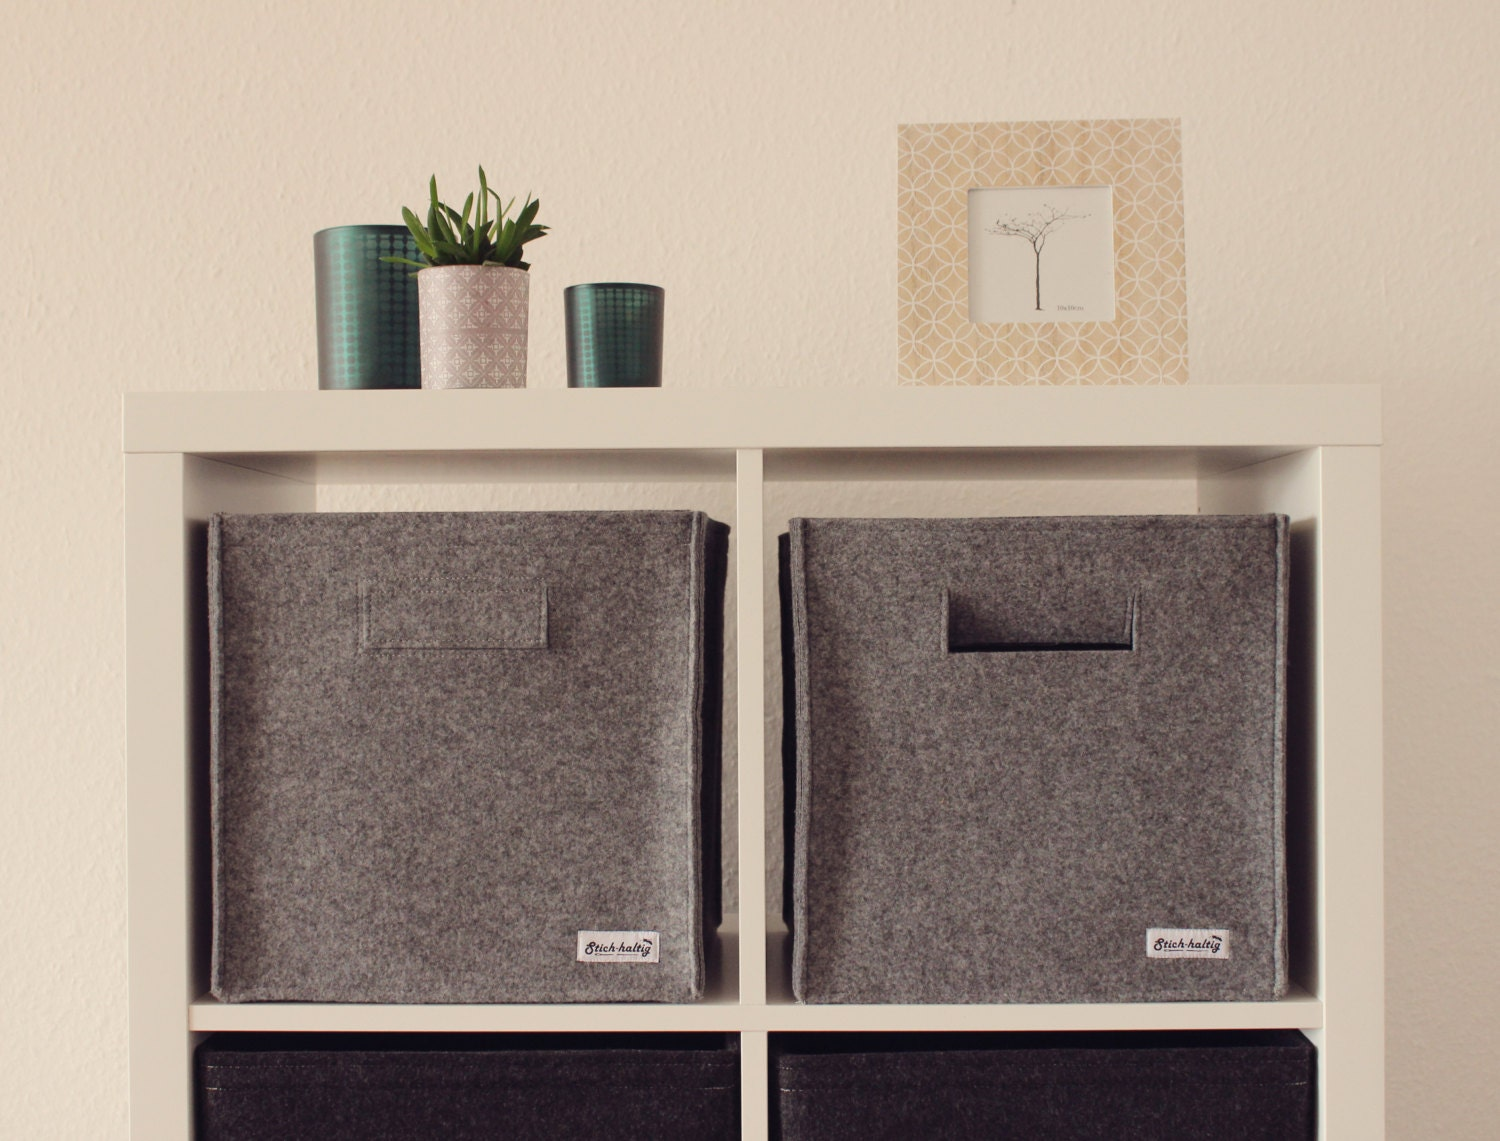 regalkorb aus filz aufbewahrung filzbox filzkorb regalkorb. Black Bedroom Furniture Sets. Home Design Ideas